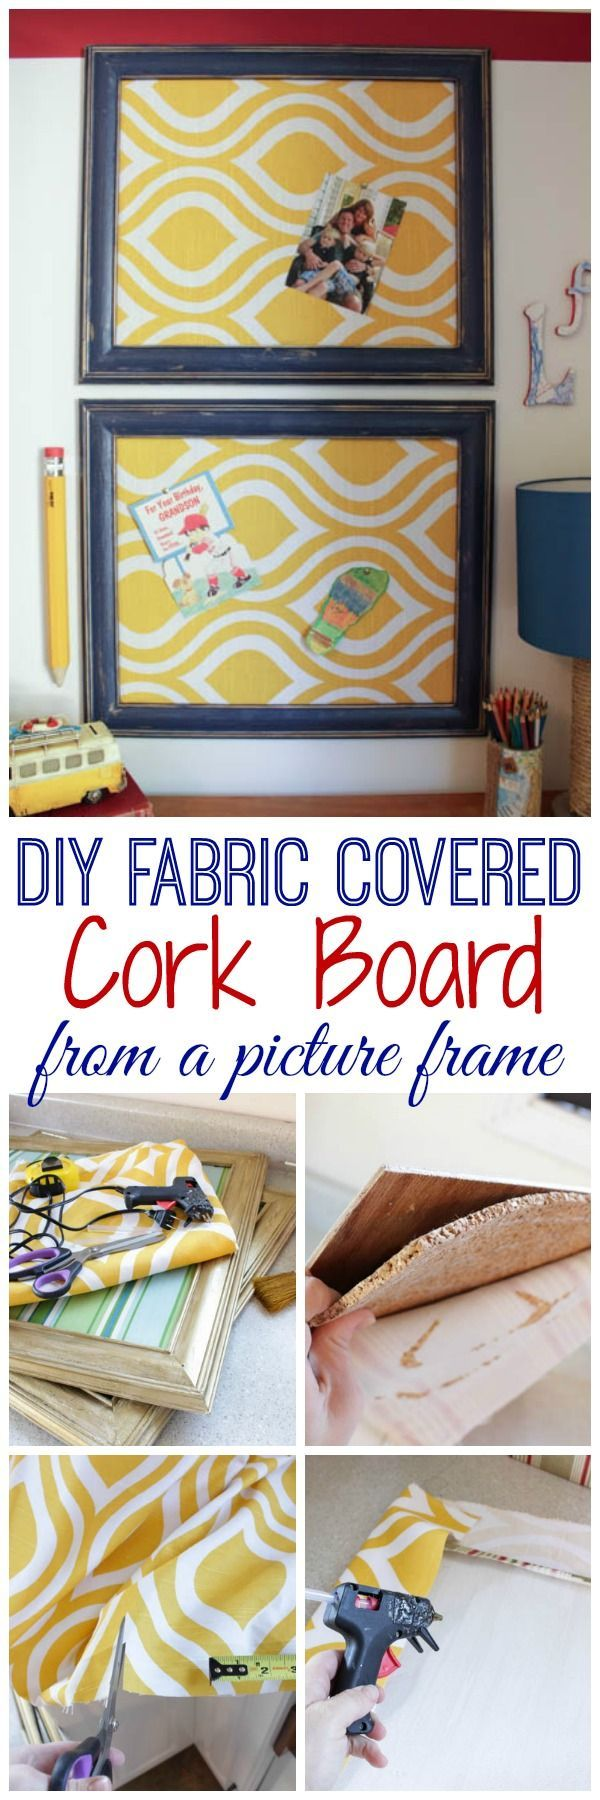 Diy fabric covered cork board using a picture frame para for Diy fabric bulletin board ideas